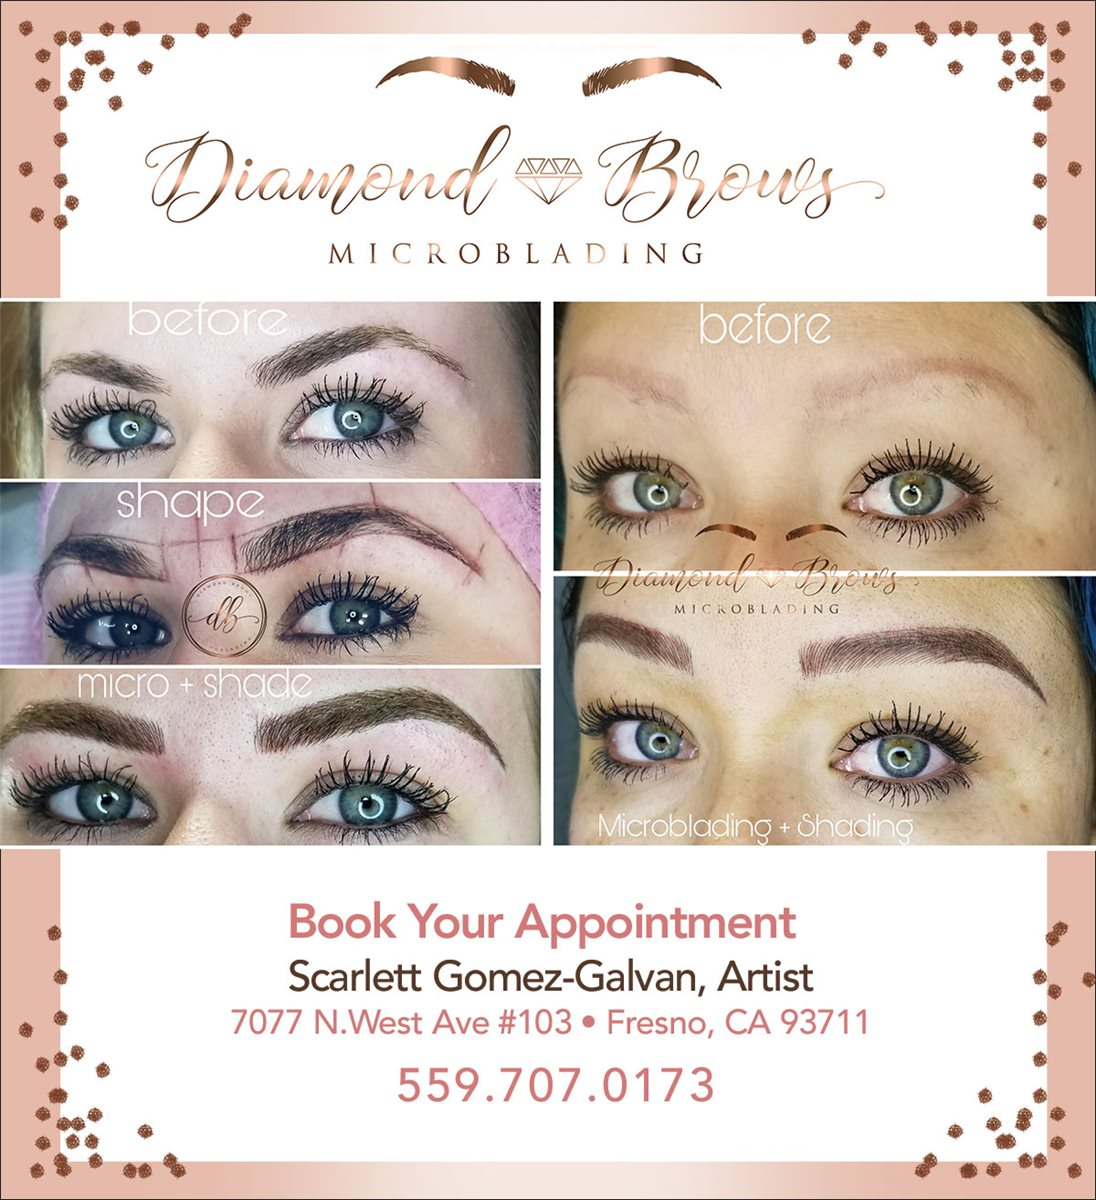 Christians In Business Diamond Brows Microblading Details